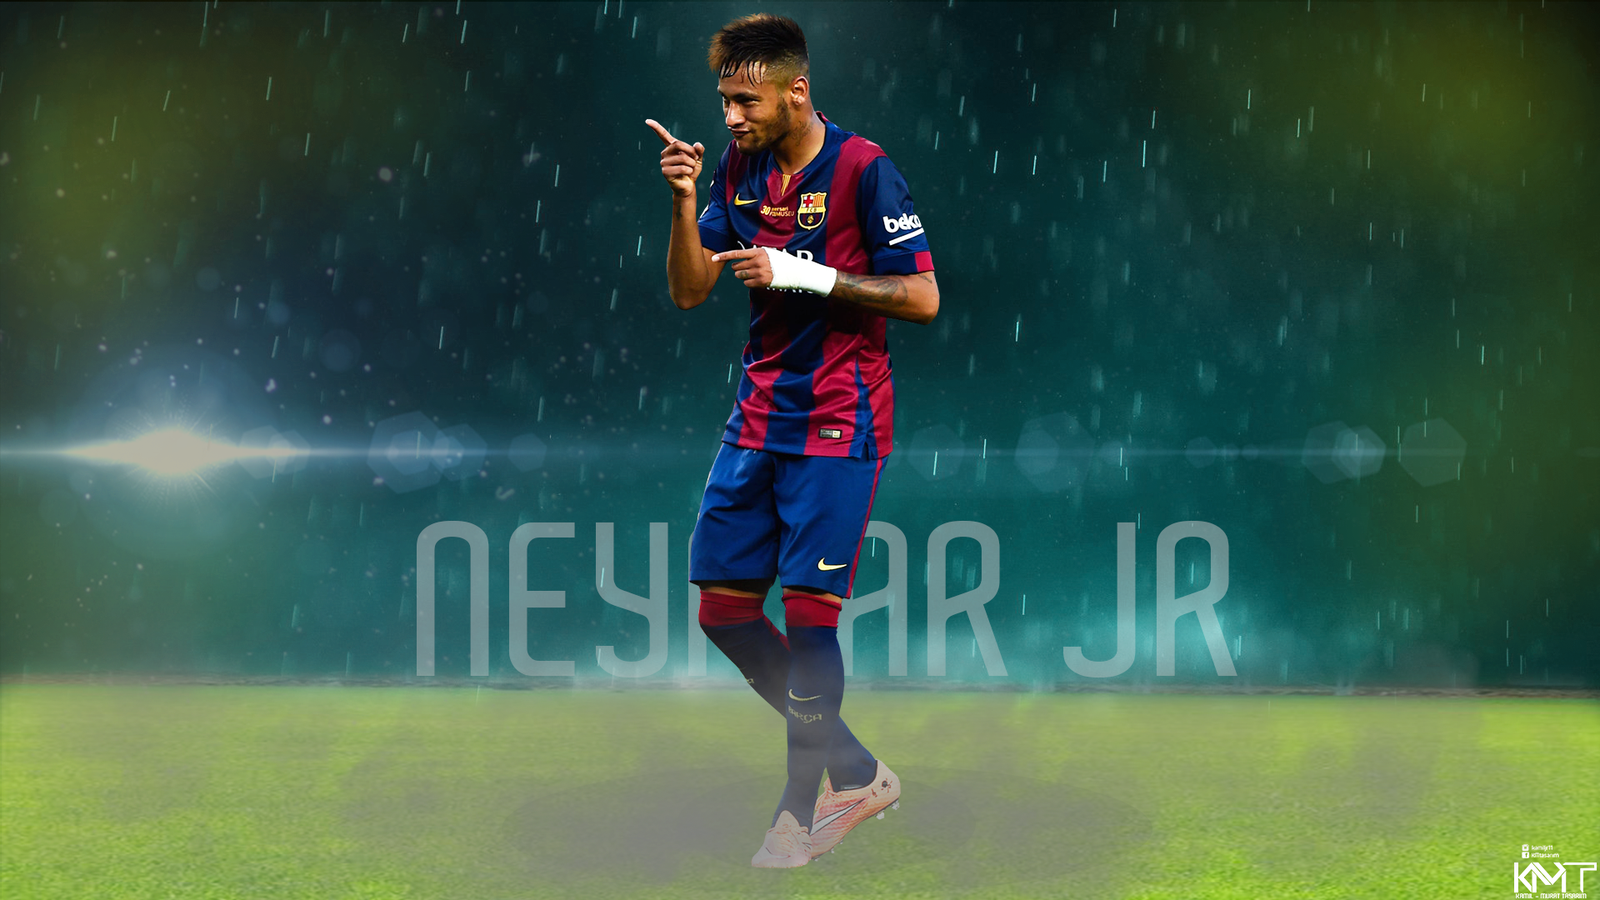 Awesome Neymar Wallpapers HD